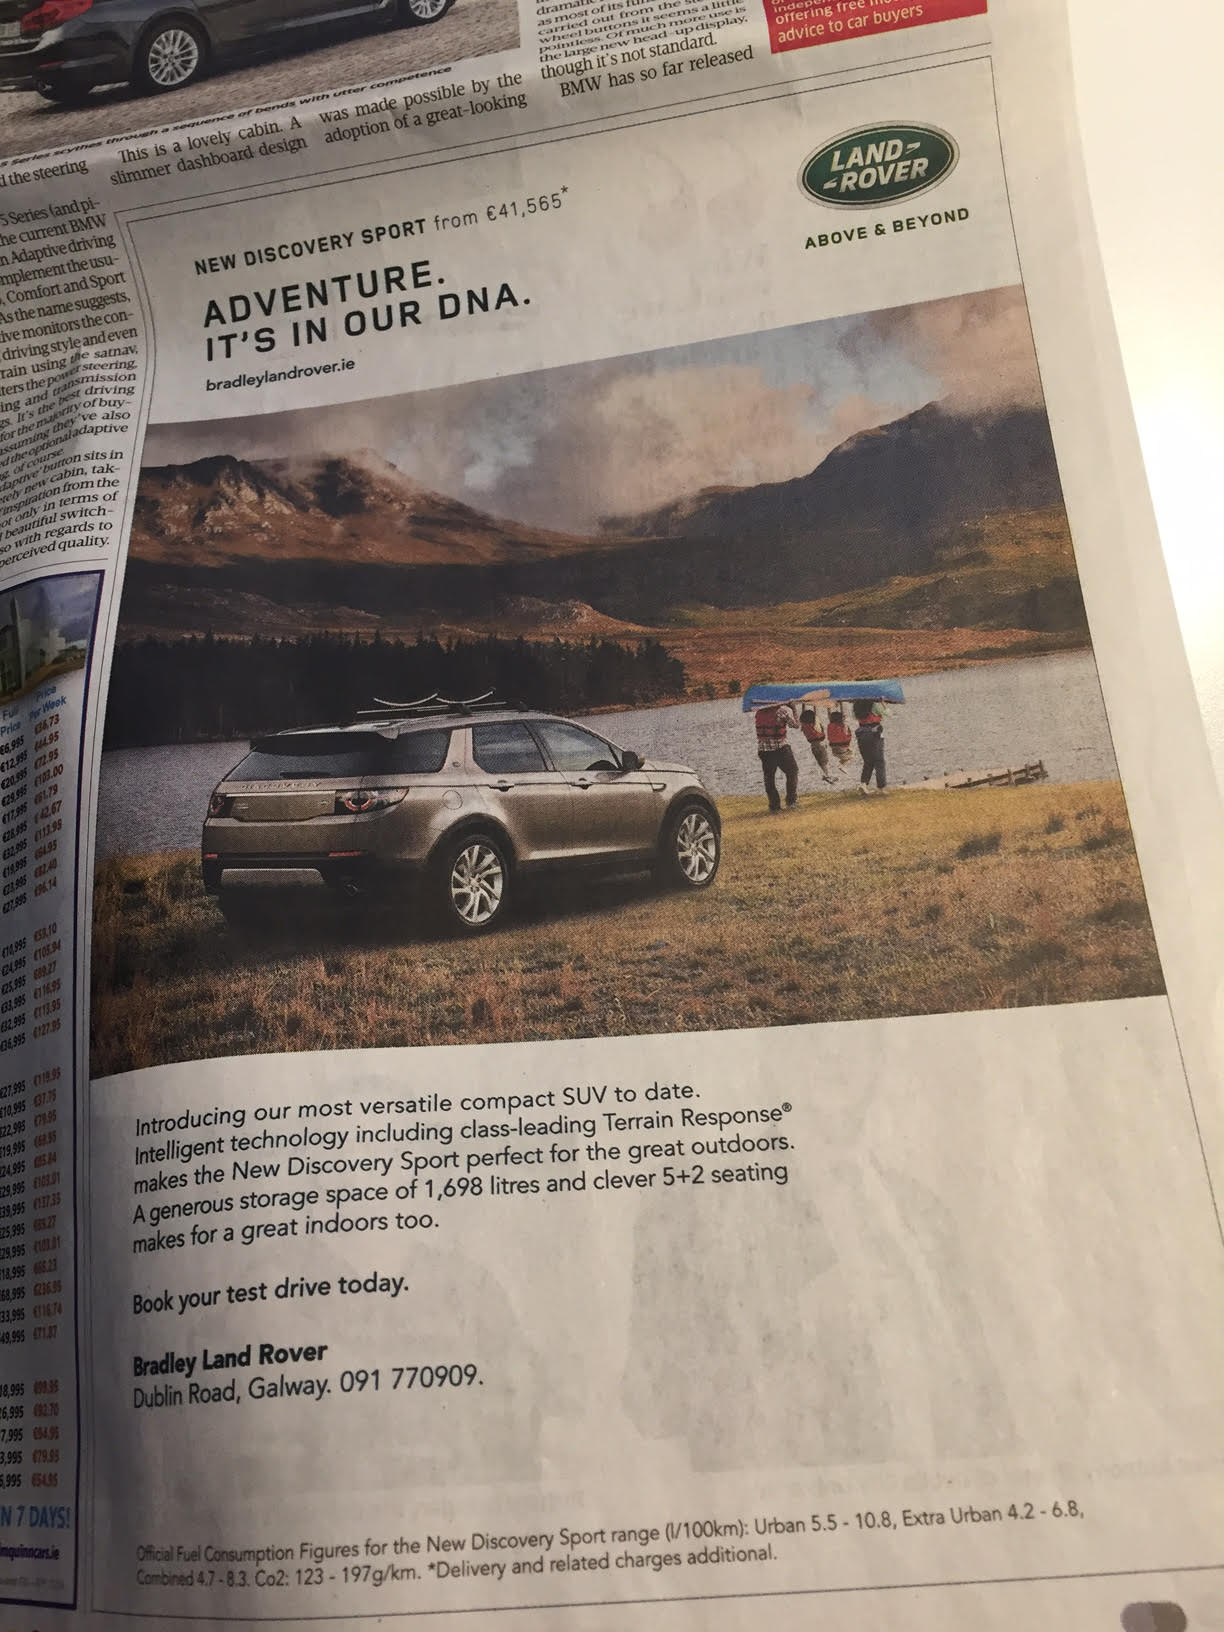 Land Rover – Adventure. It's in our DNA.